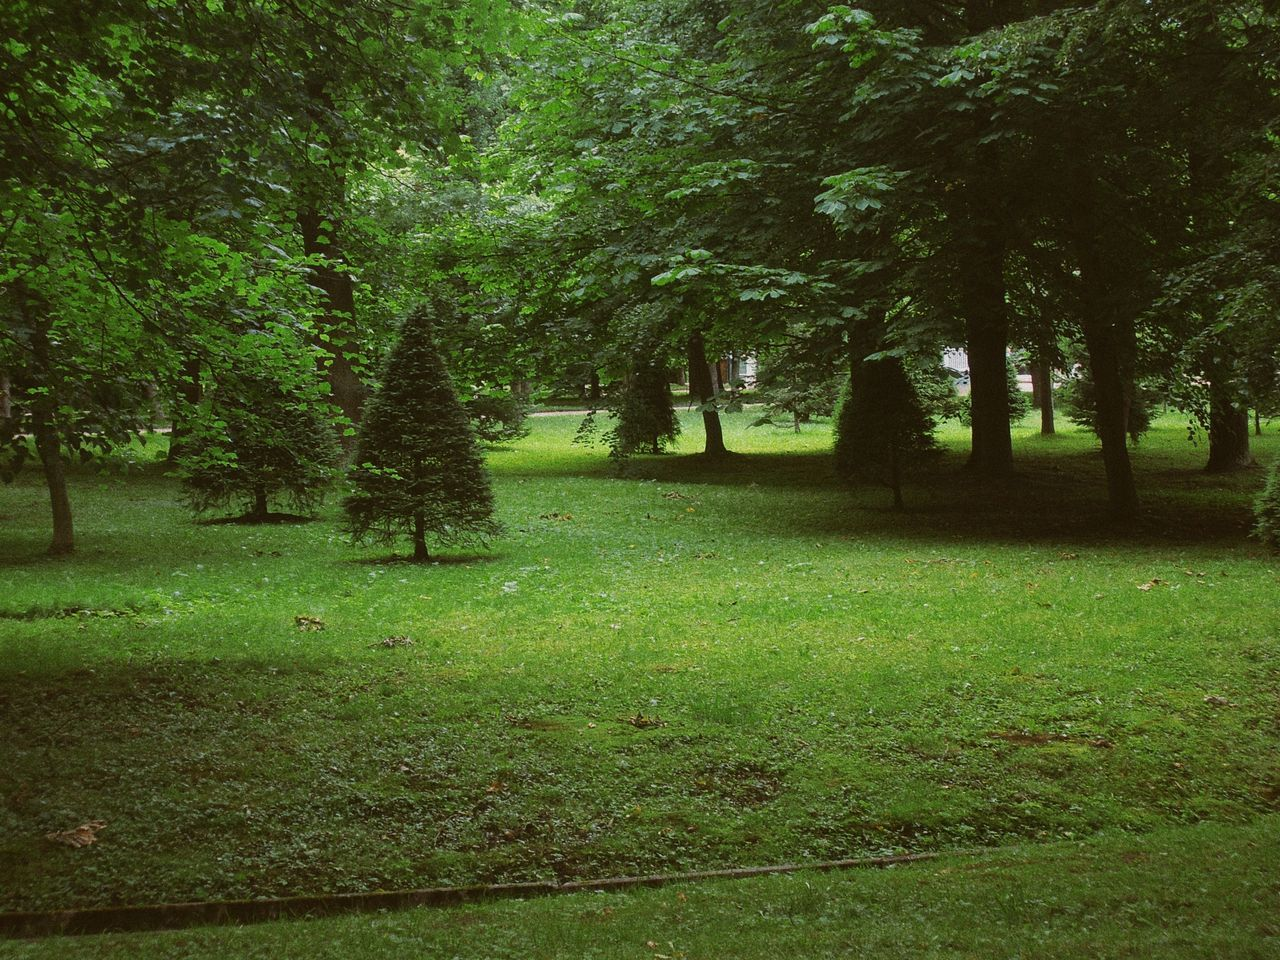 tree, nature, grass, growth, tranquility, forest, beauty in nature, landscape, outdoors, no people, scenics, day